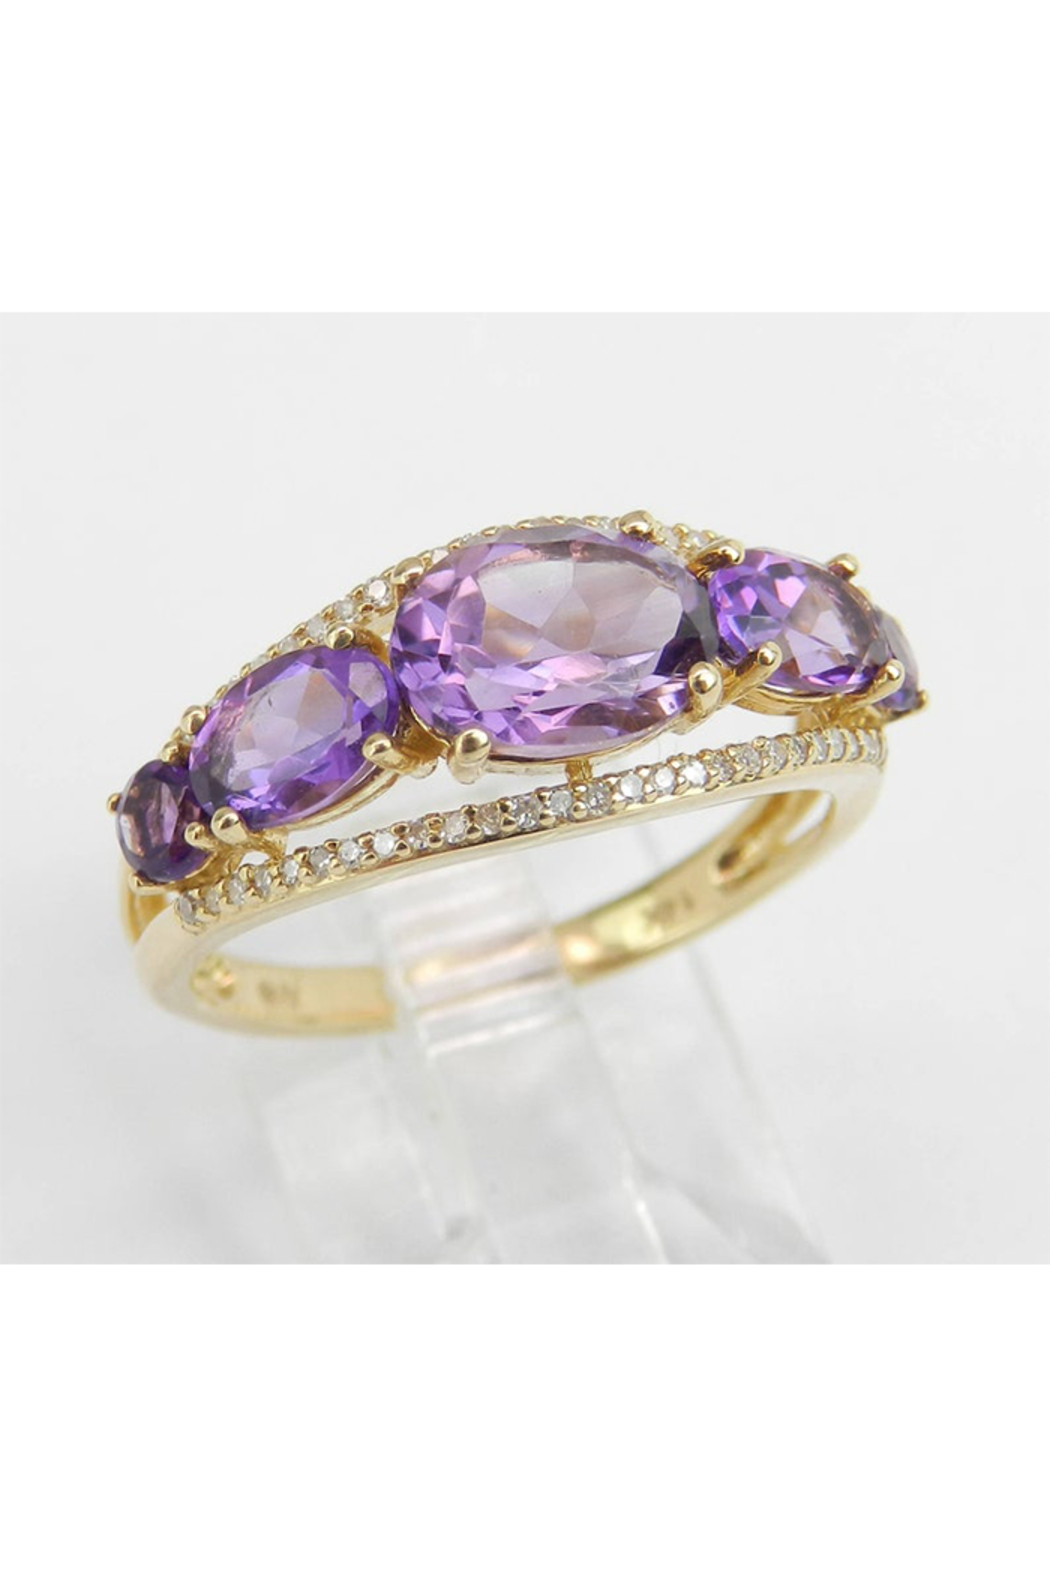 Margolin & Co 14K Yellow Gold Diamond and Amethyst Cocktail Ring Anniversary Band Size 7 Stackable Look - Main Image